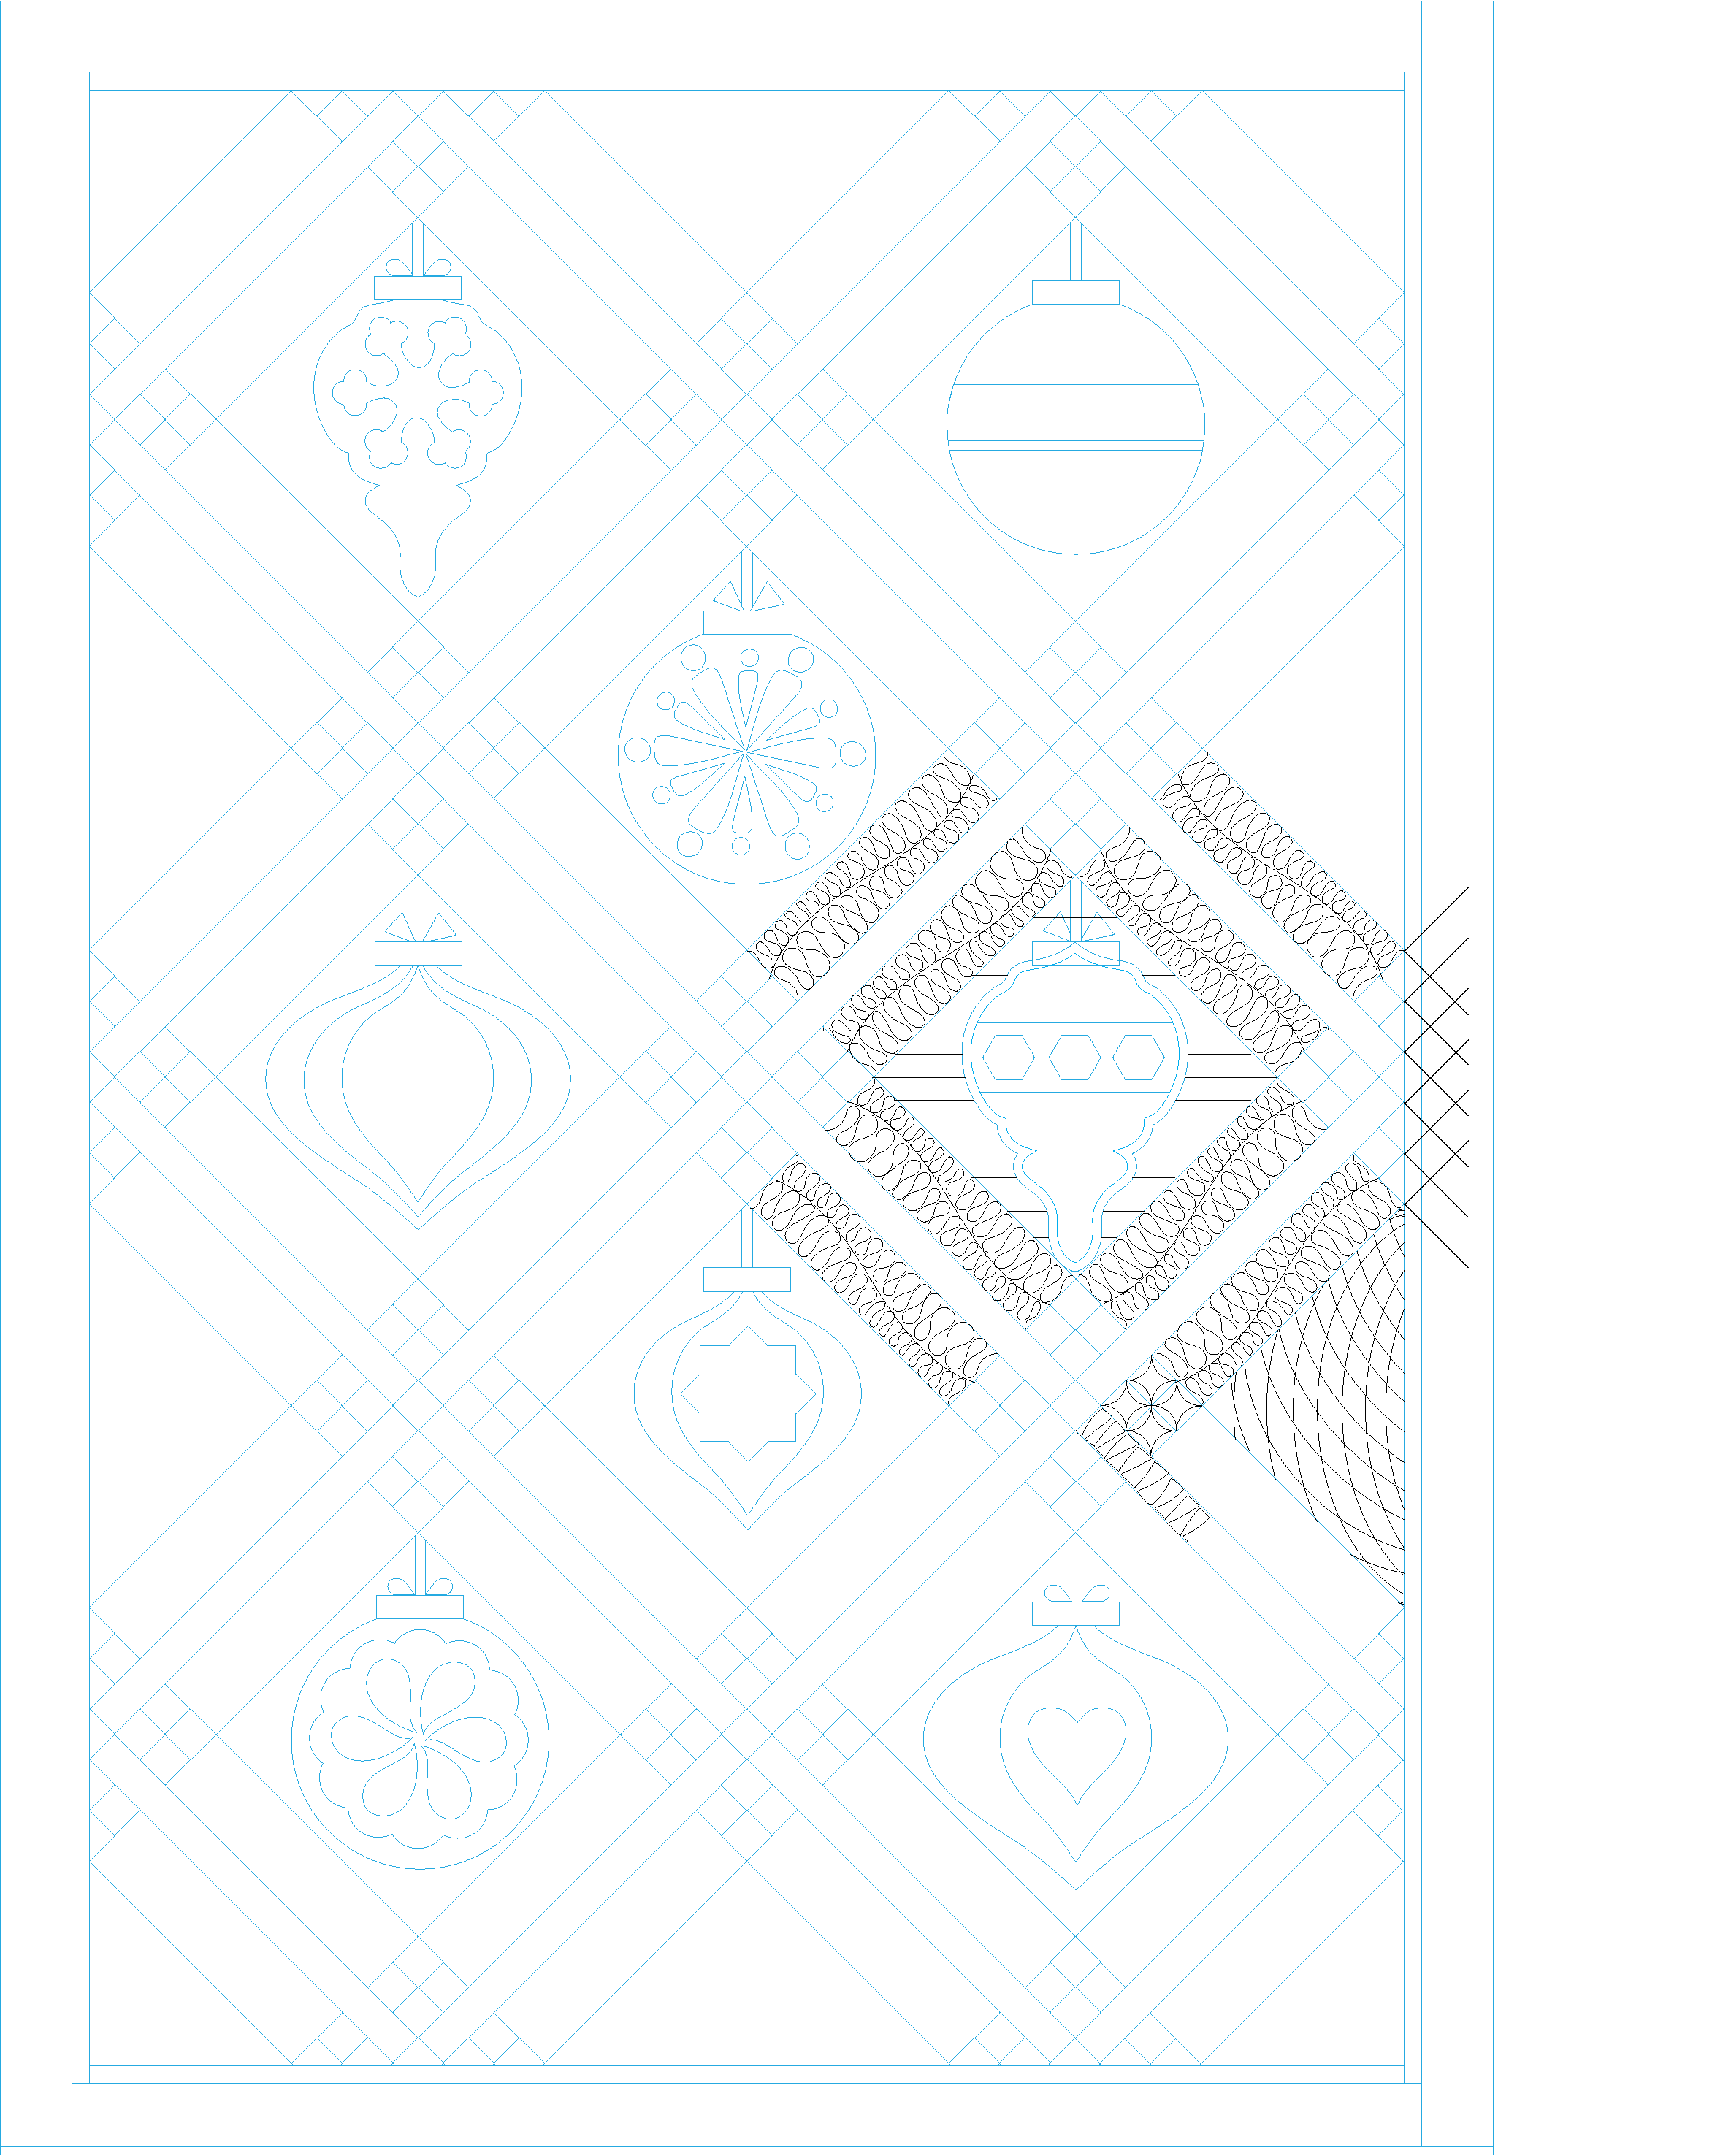 Download free vintage ornaments vintage ornaments and iders -  Below As A Pdf So You Can Play With Quilting Lines Before Working On Your Quilt Download The Printable Vintage Ornaments Quilt Ideas Template Here